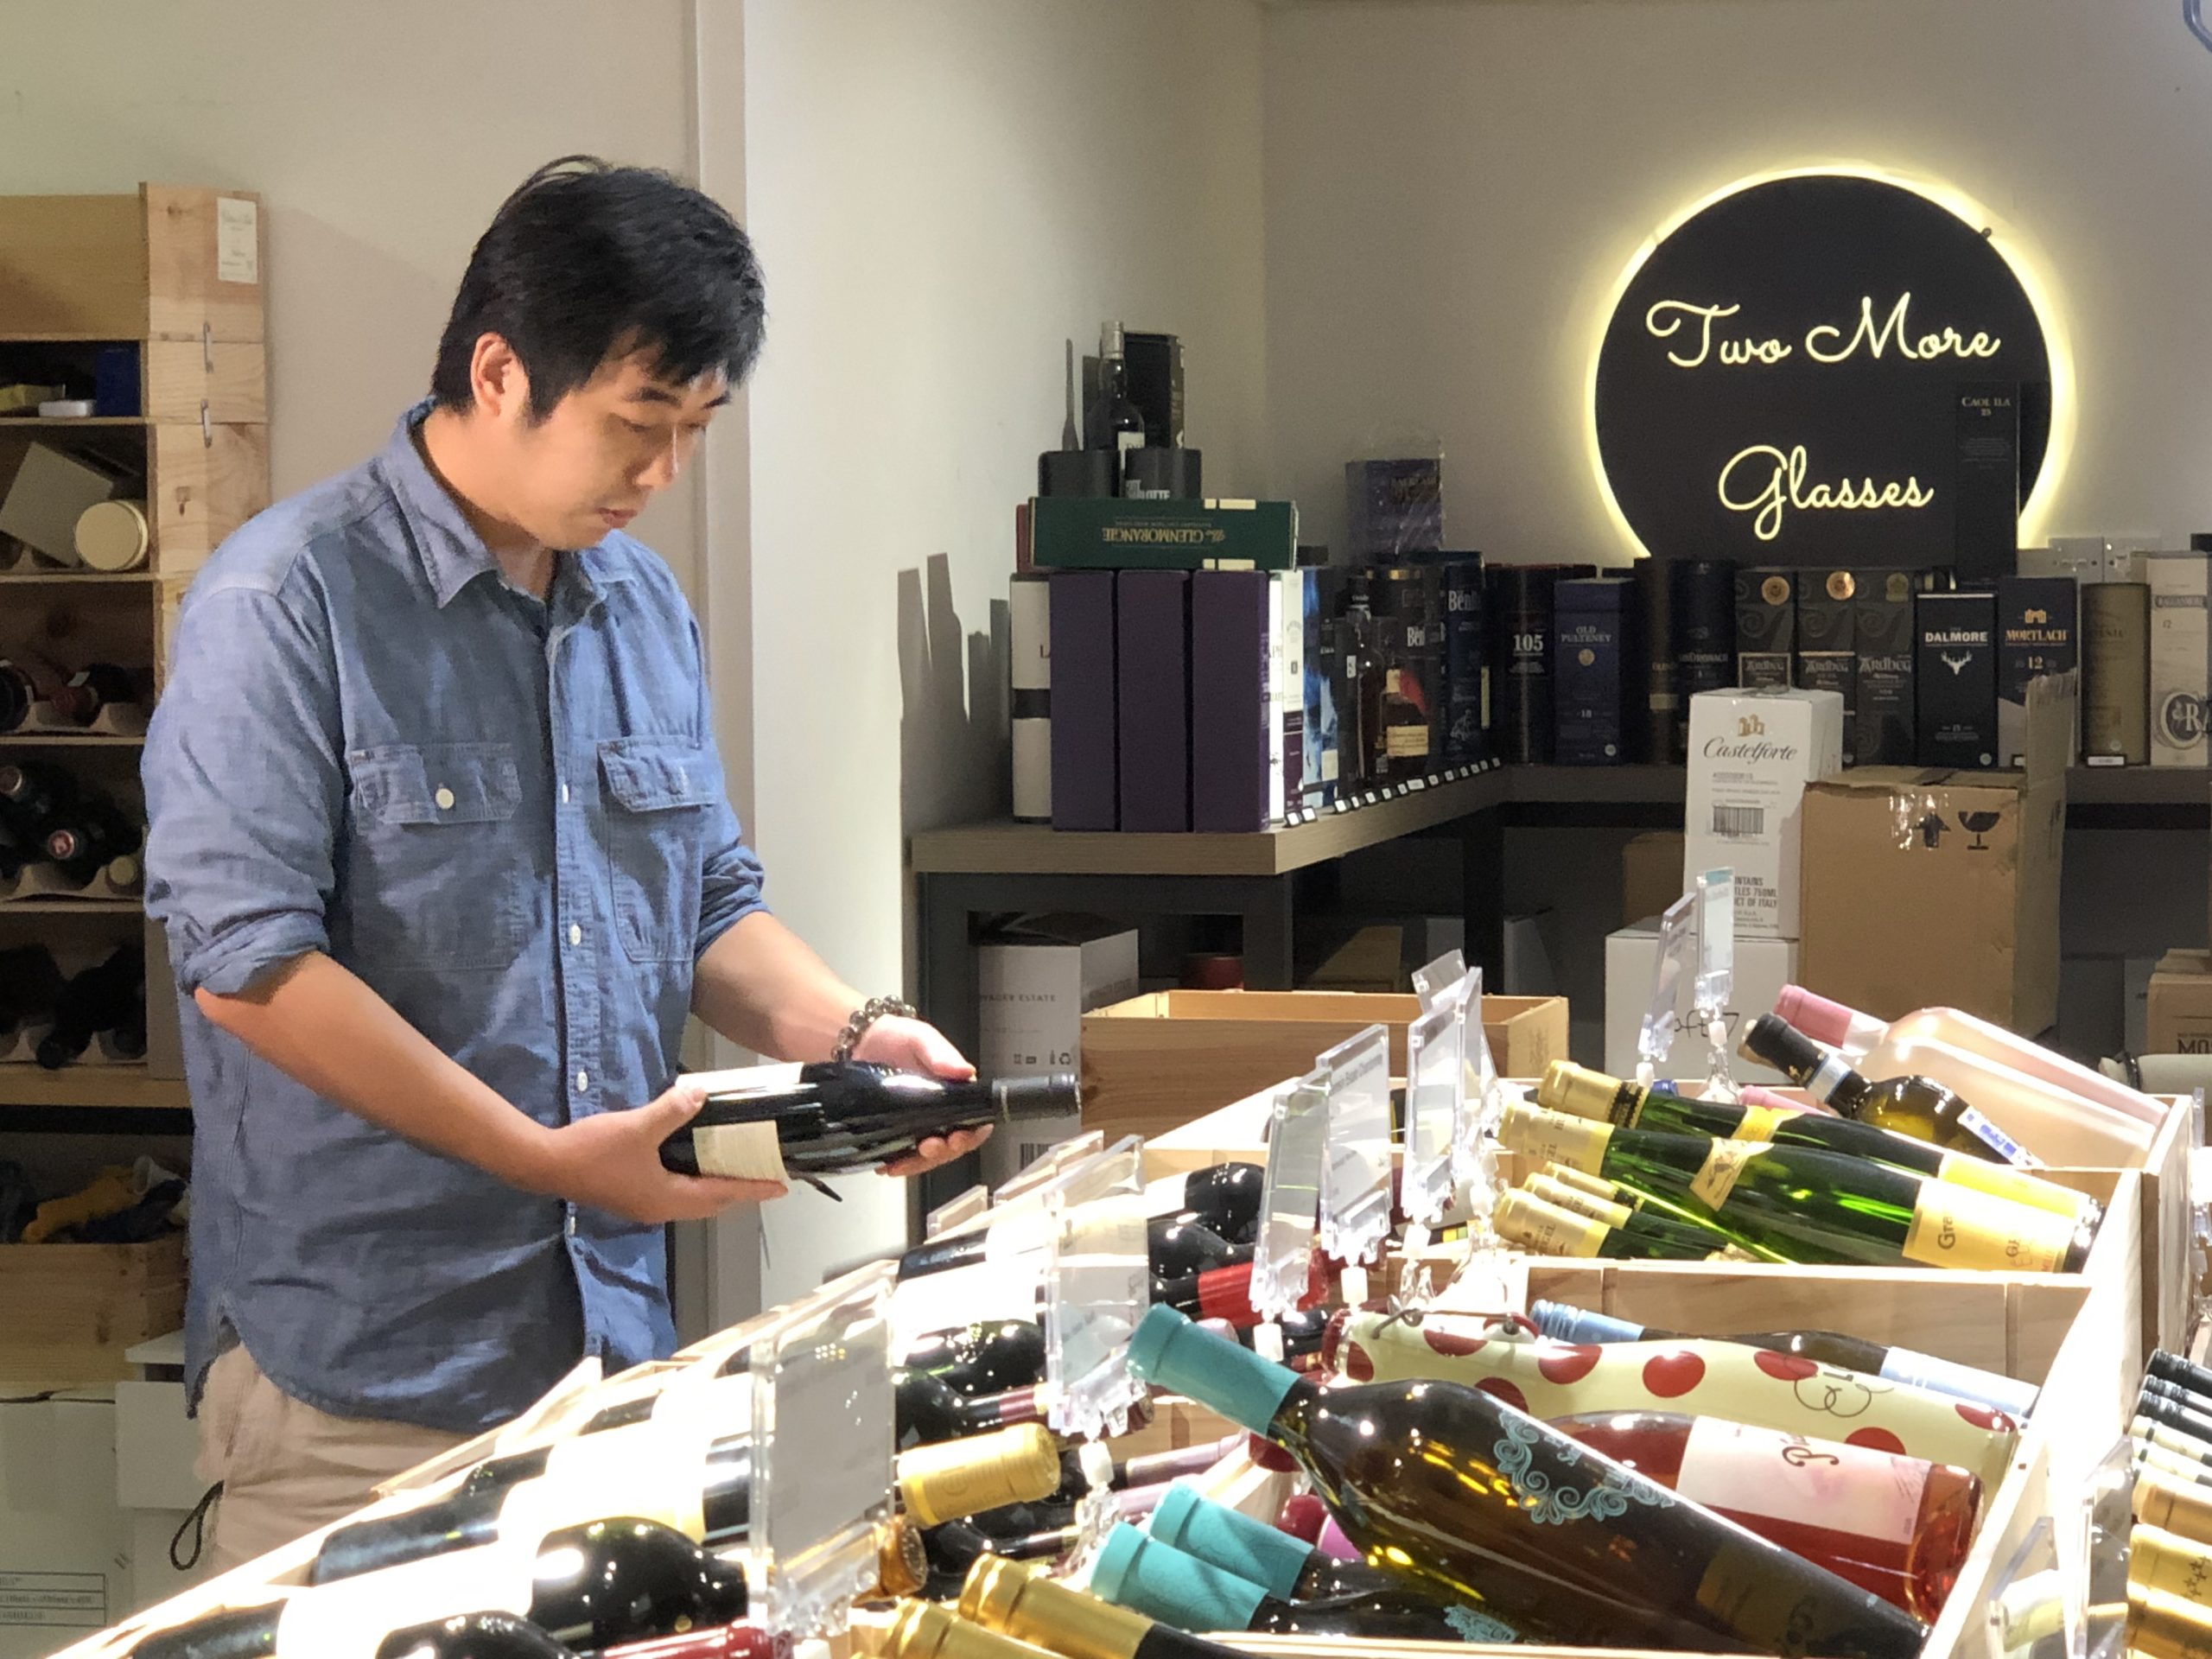 Behind the scene – Two More Glasses customer story video shooting